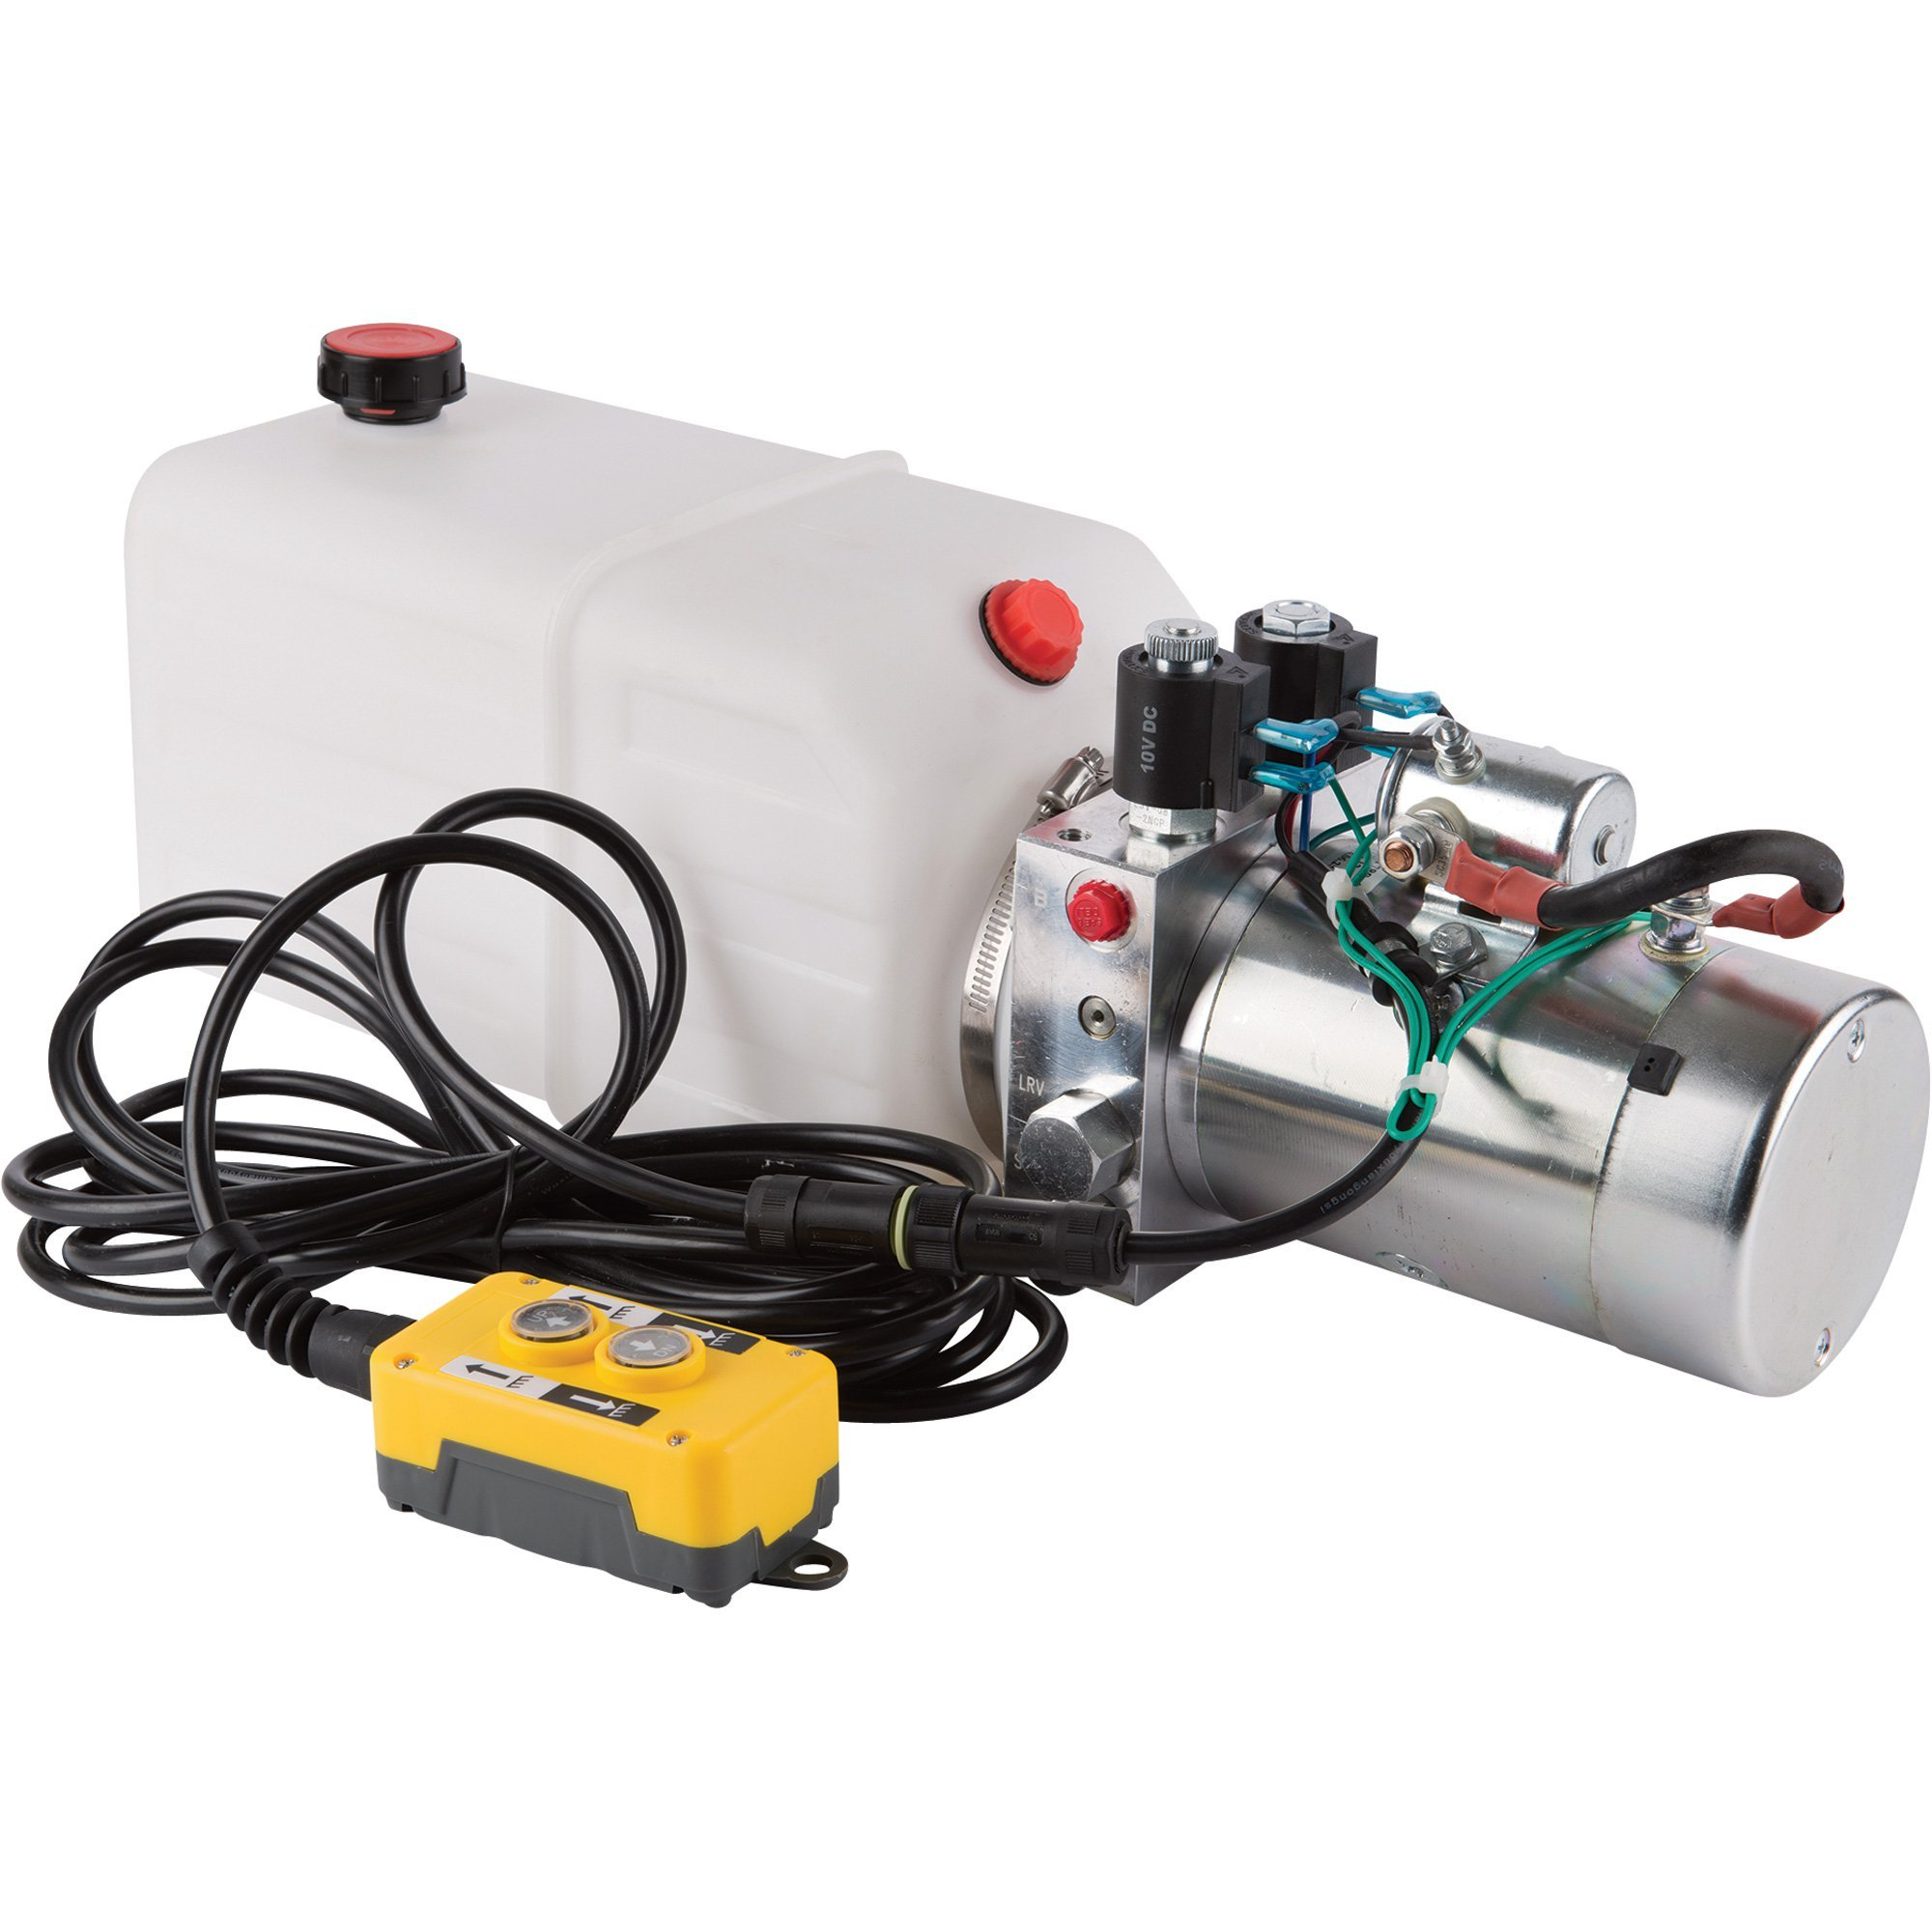 NorTrac Dump Trailer Power Unit with 12V DC Motor - For Double-Acting Cylinder, 2.1 Gal. Reservoir